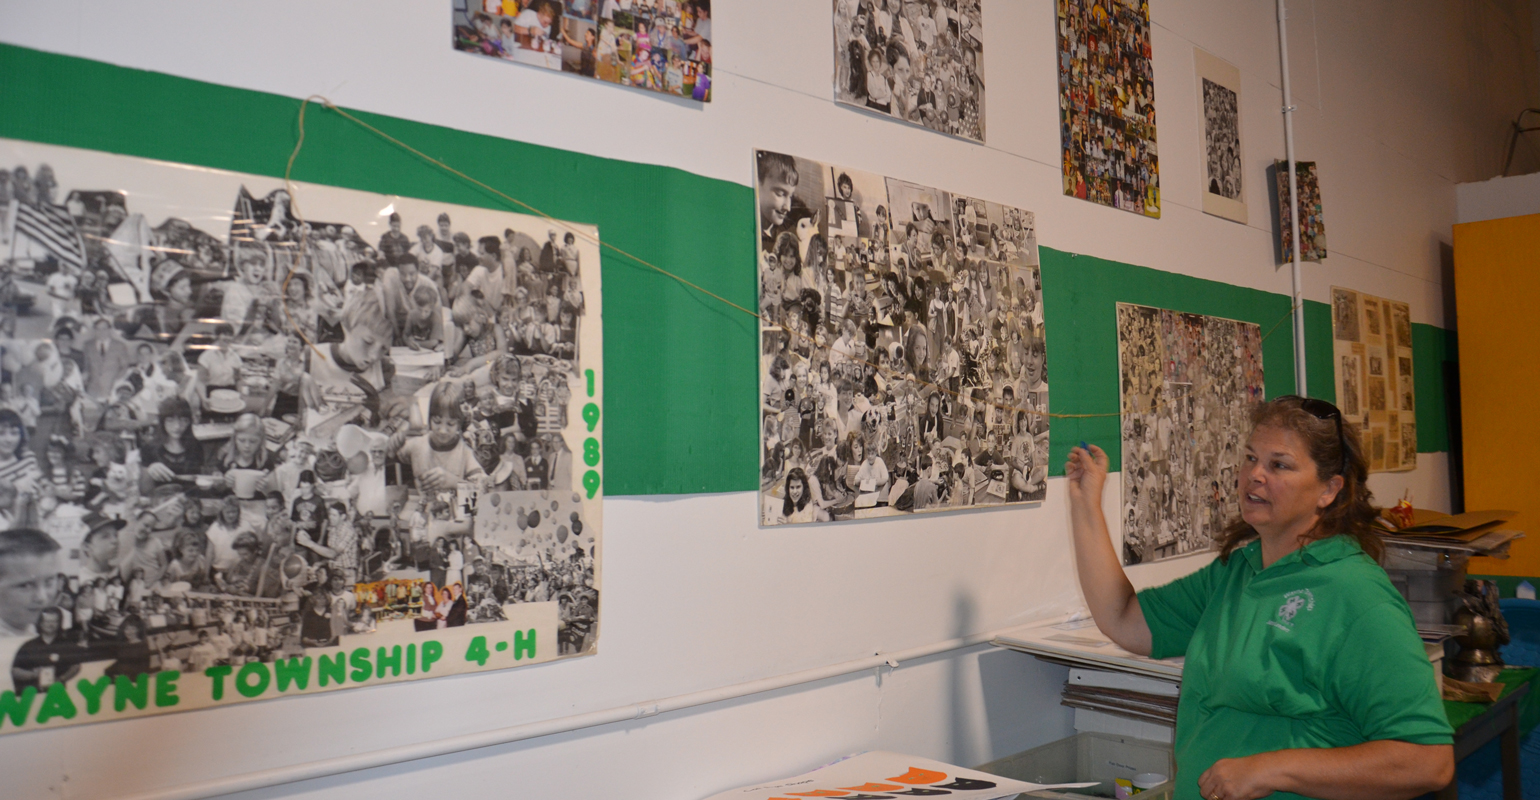 Alice Sweeney points to posters showing the history of Wayne Township 4-H